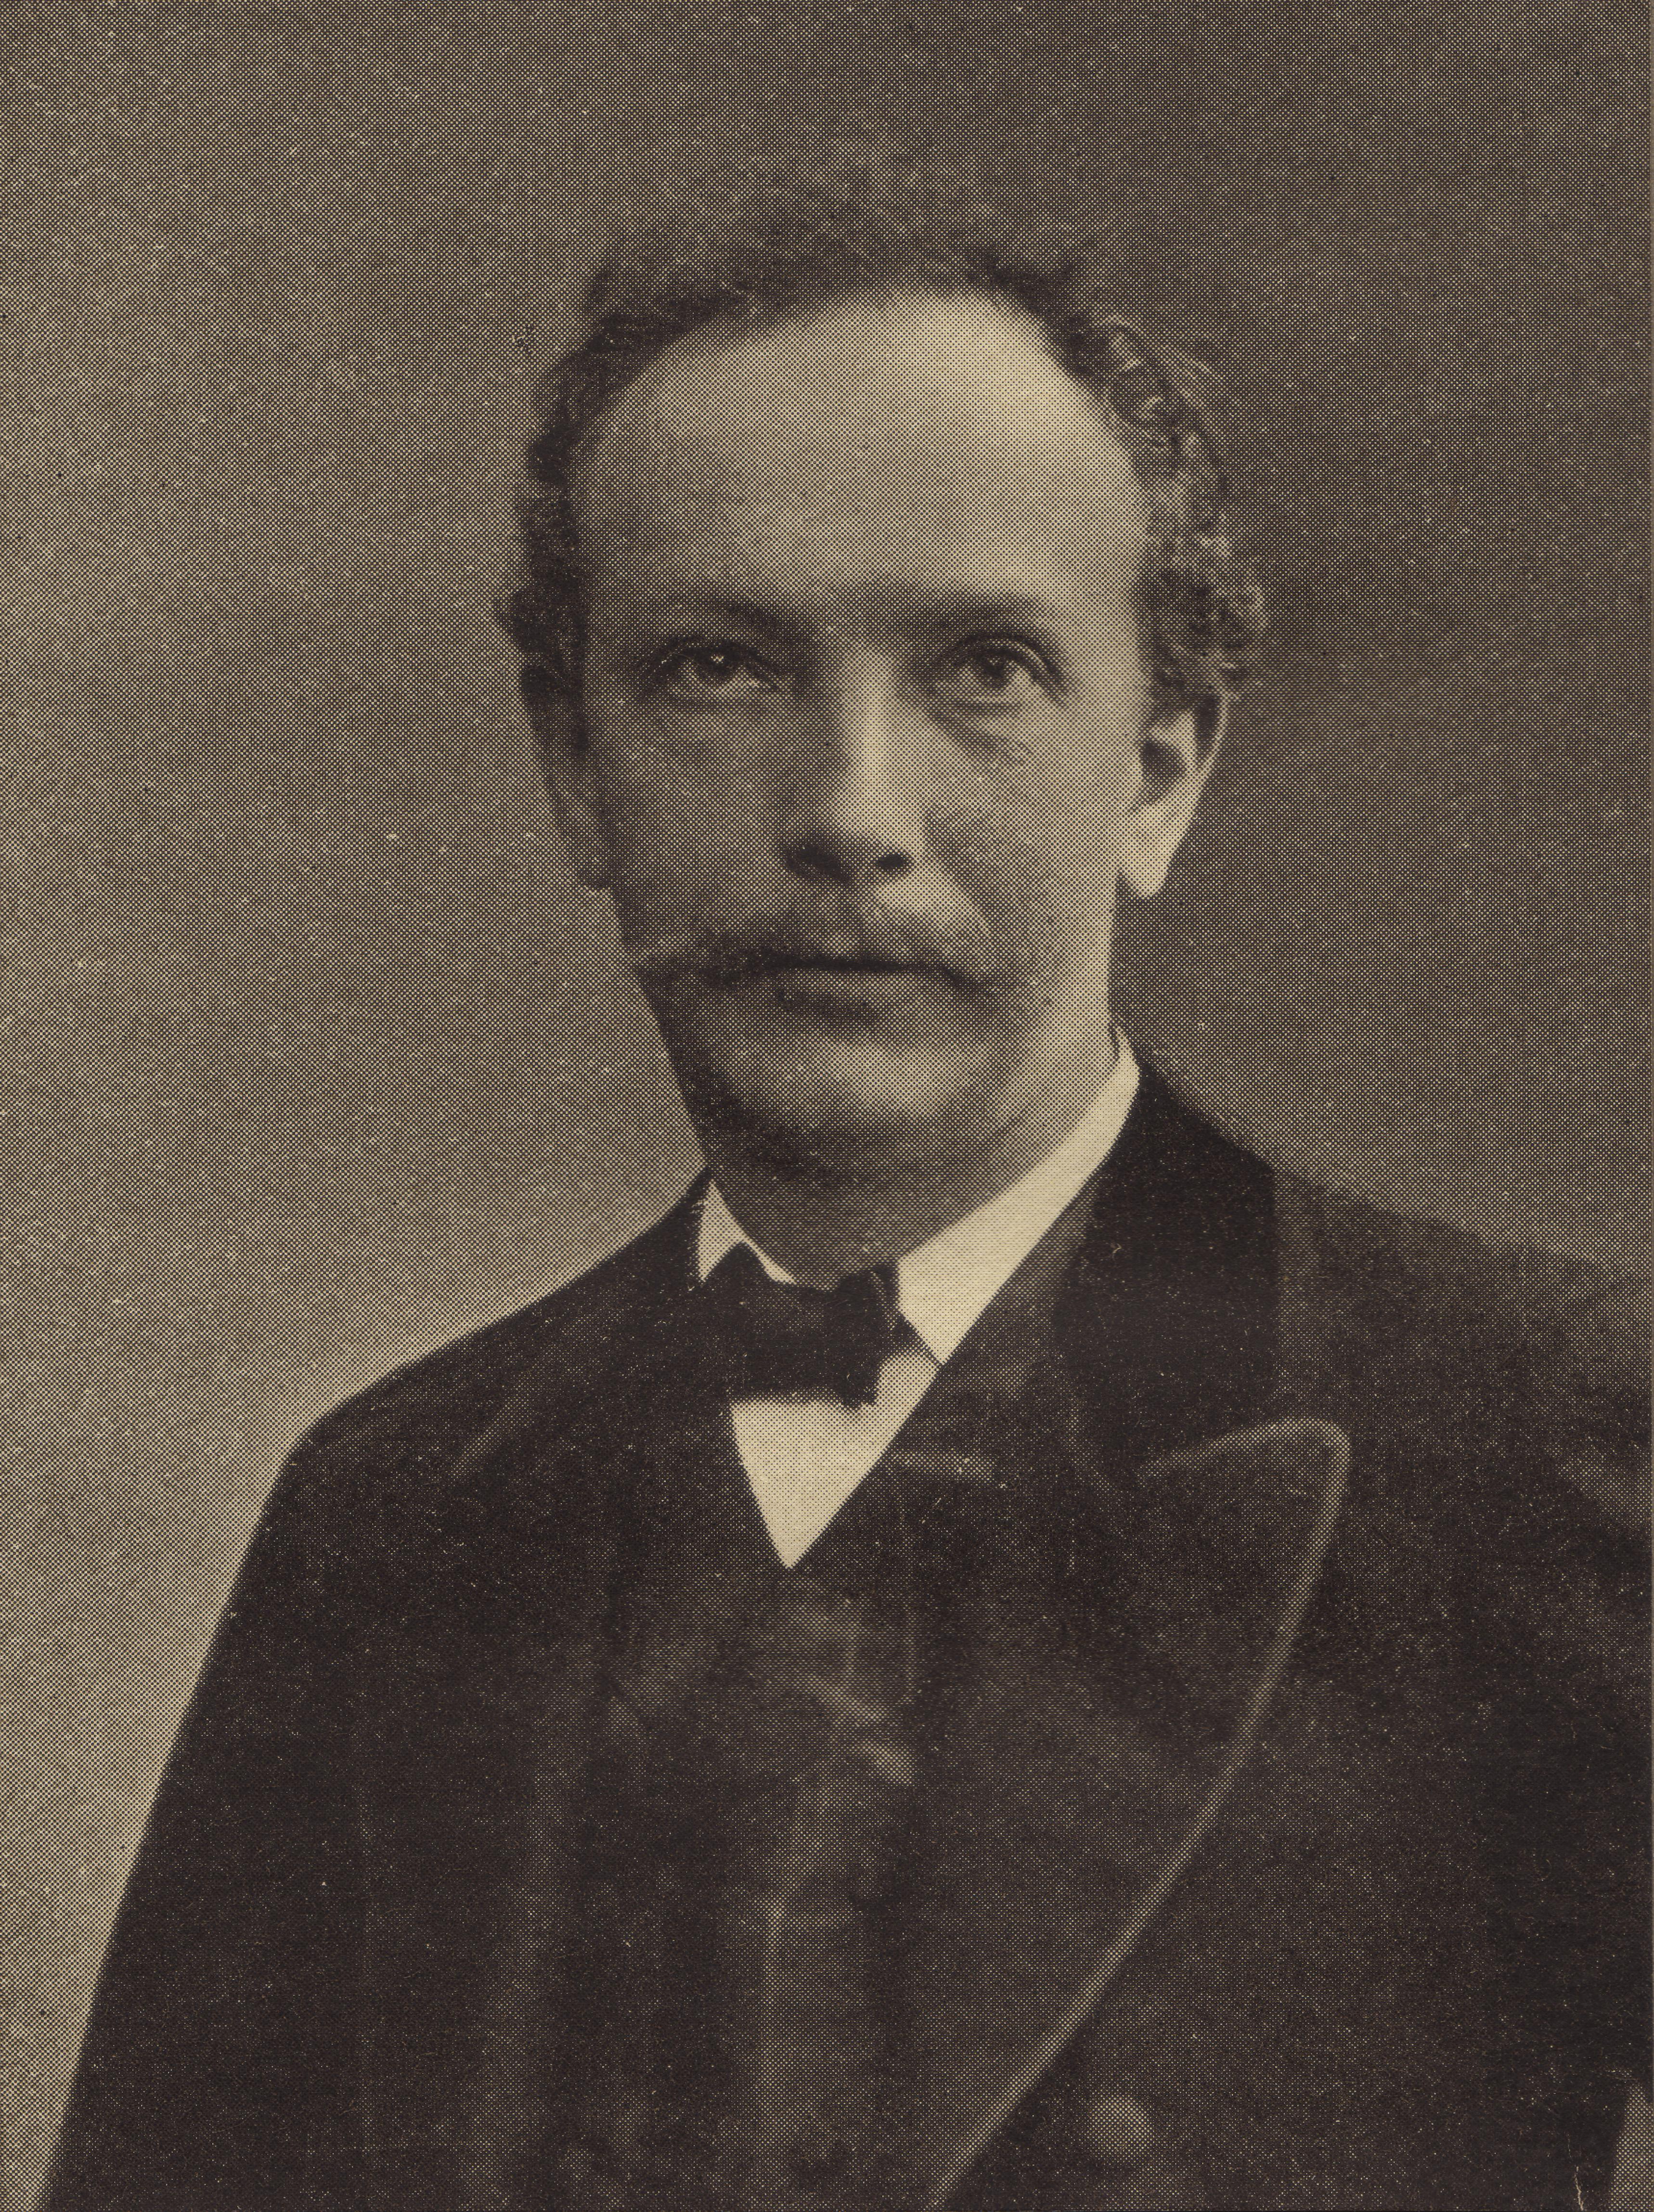 Richard Strauss, 1864-1949